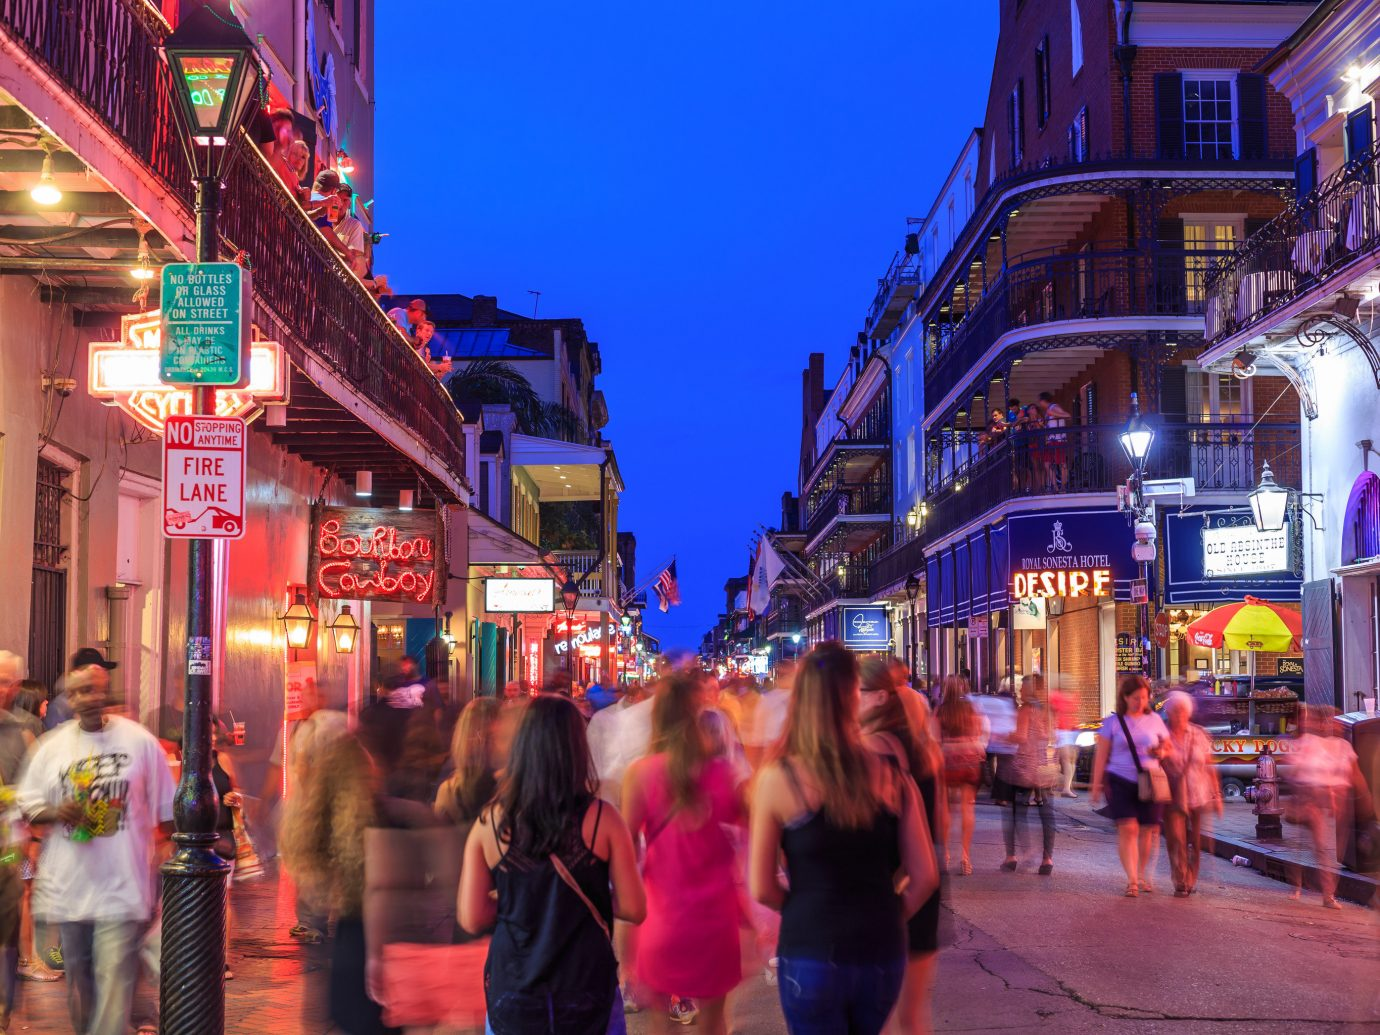 Girls Getaways New Orleans Trip Ideas Weekend Getaways building outdoor street color person crowd road Town City walking human settlement night vacation tourism market Downtown evening infrastructure way travel busy